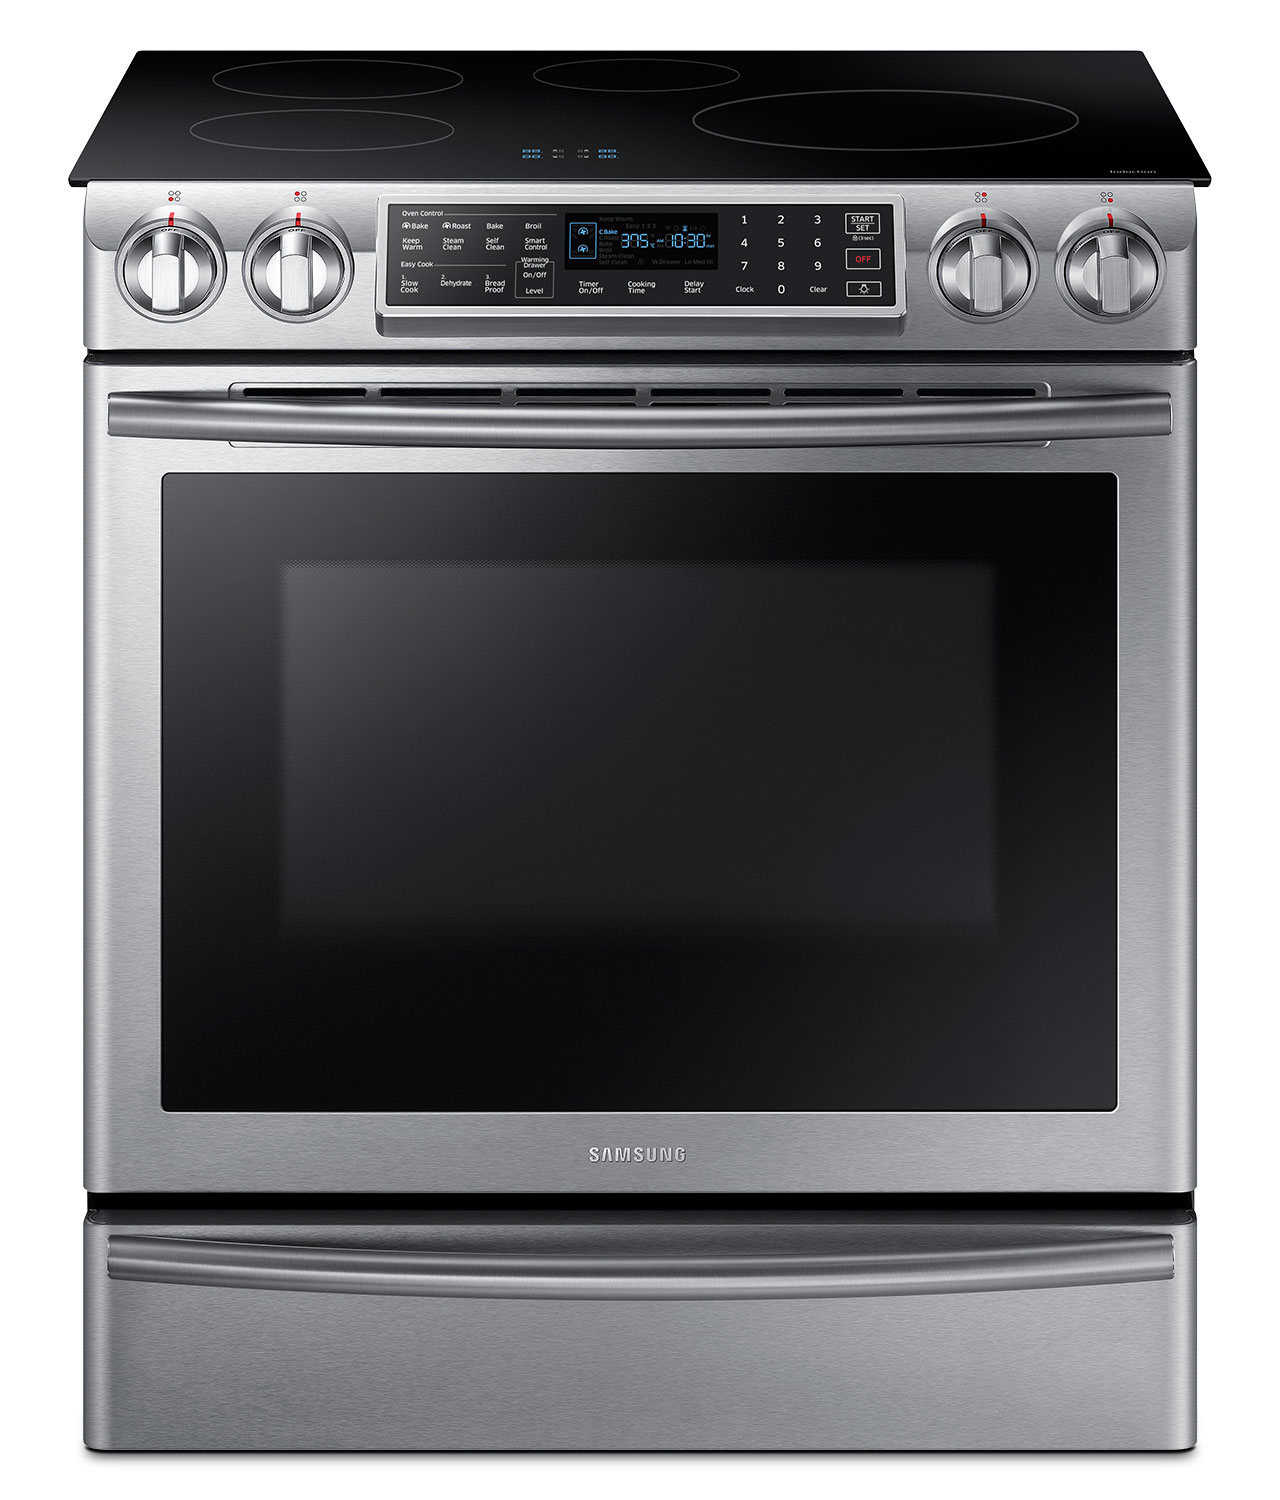 Cooking Products - Samsung Slide-In Stainless Steel Induction Range (5.8 Cu. Ft.) - NE58K9560WS/AC